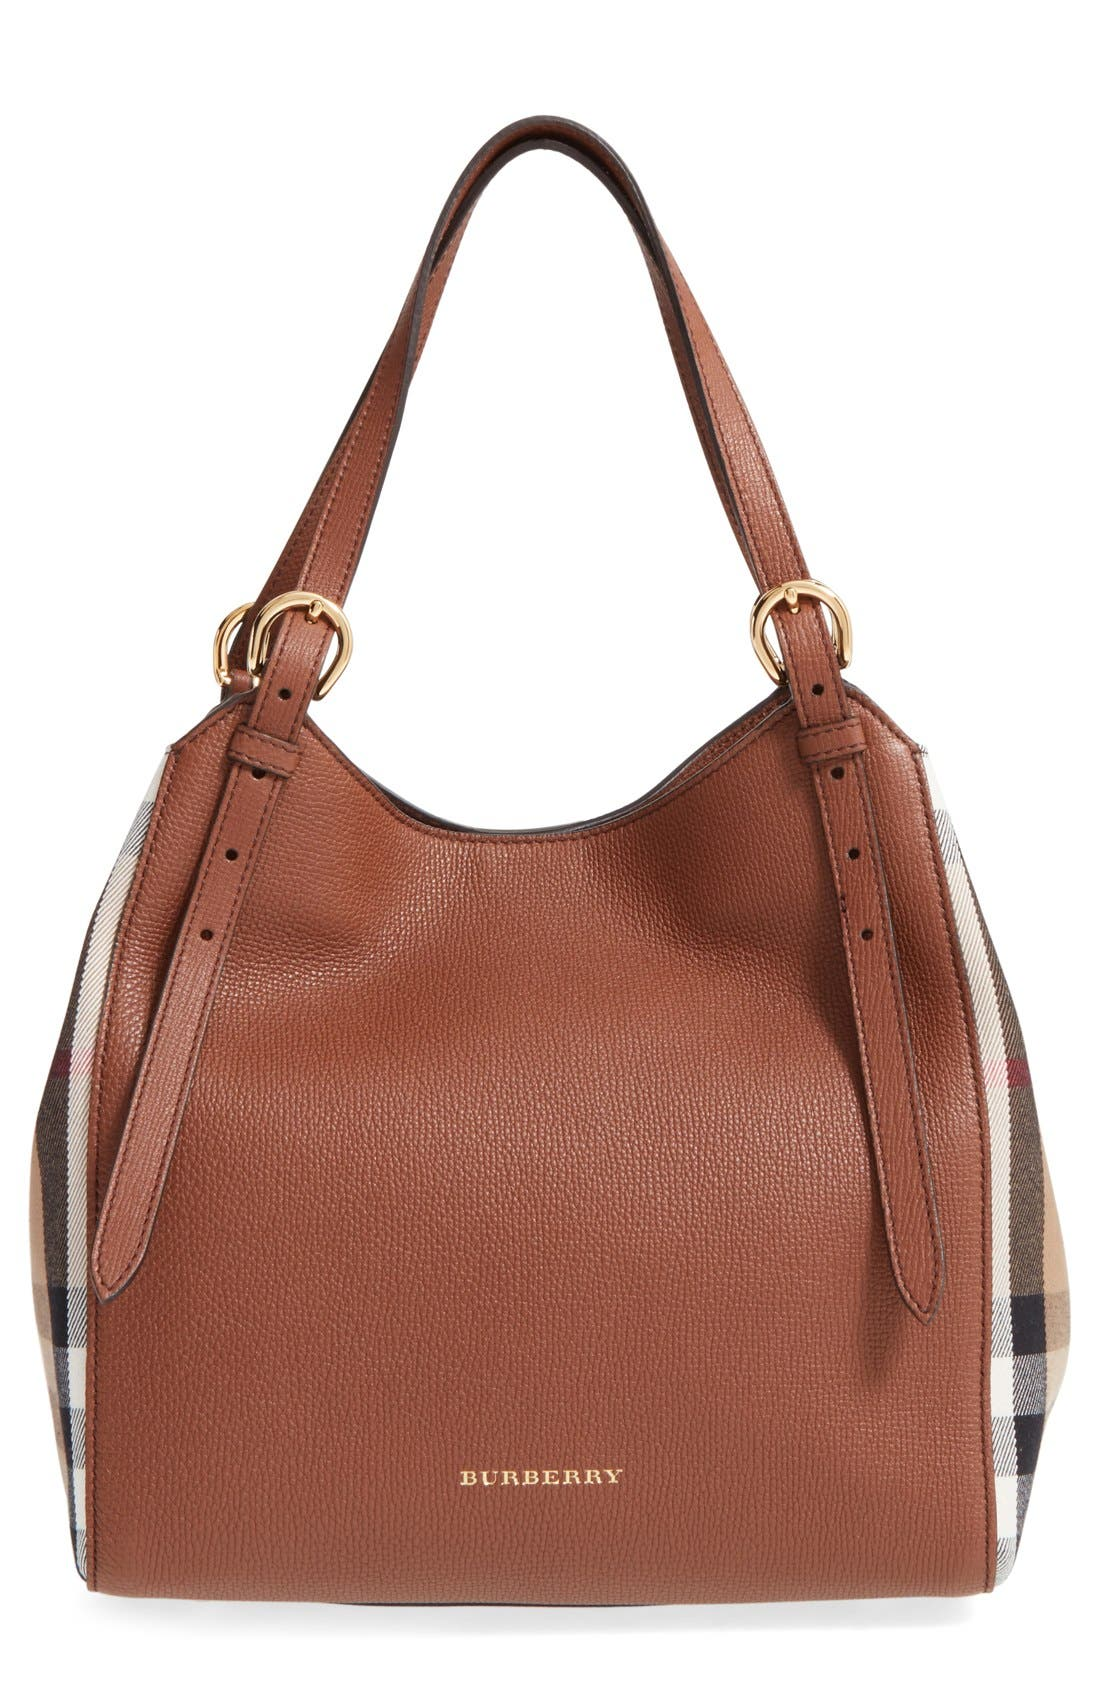 Burberry 'Canterbury' House Check & Leather Tote